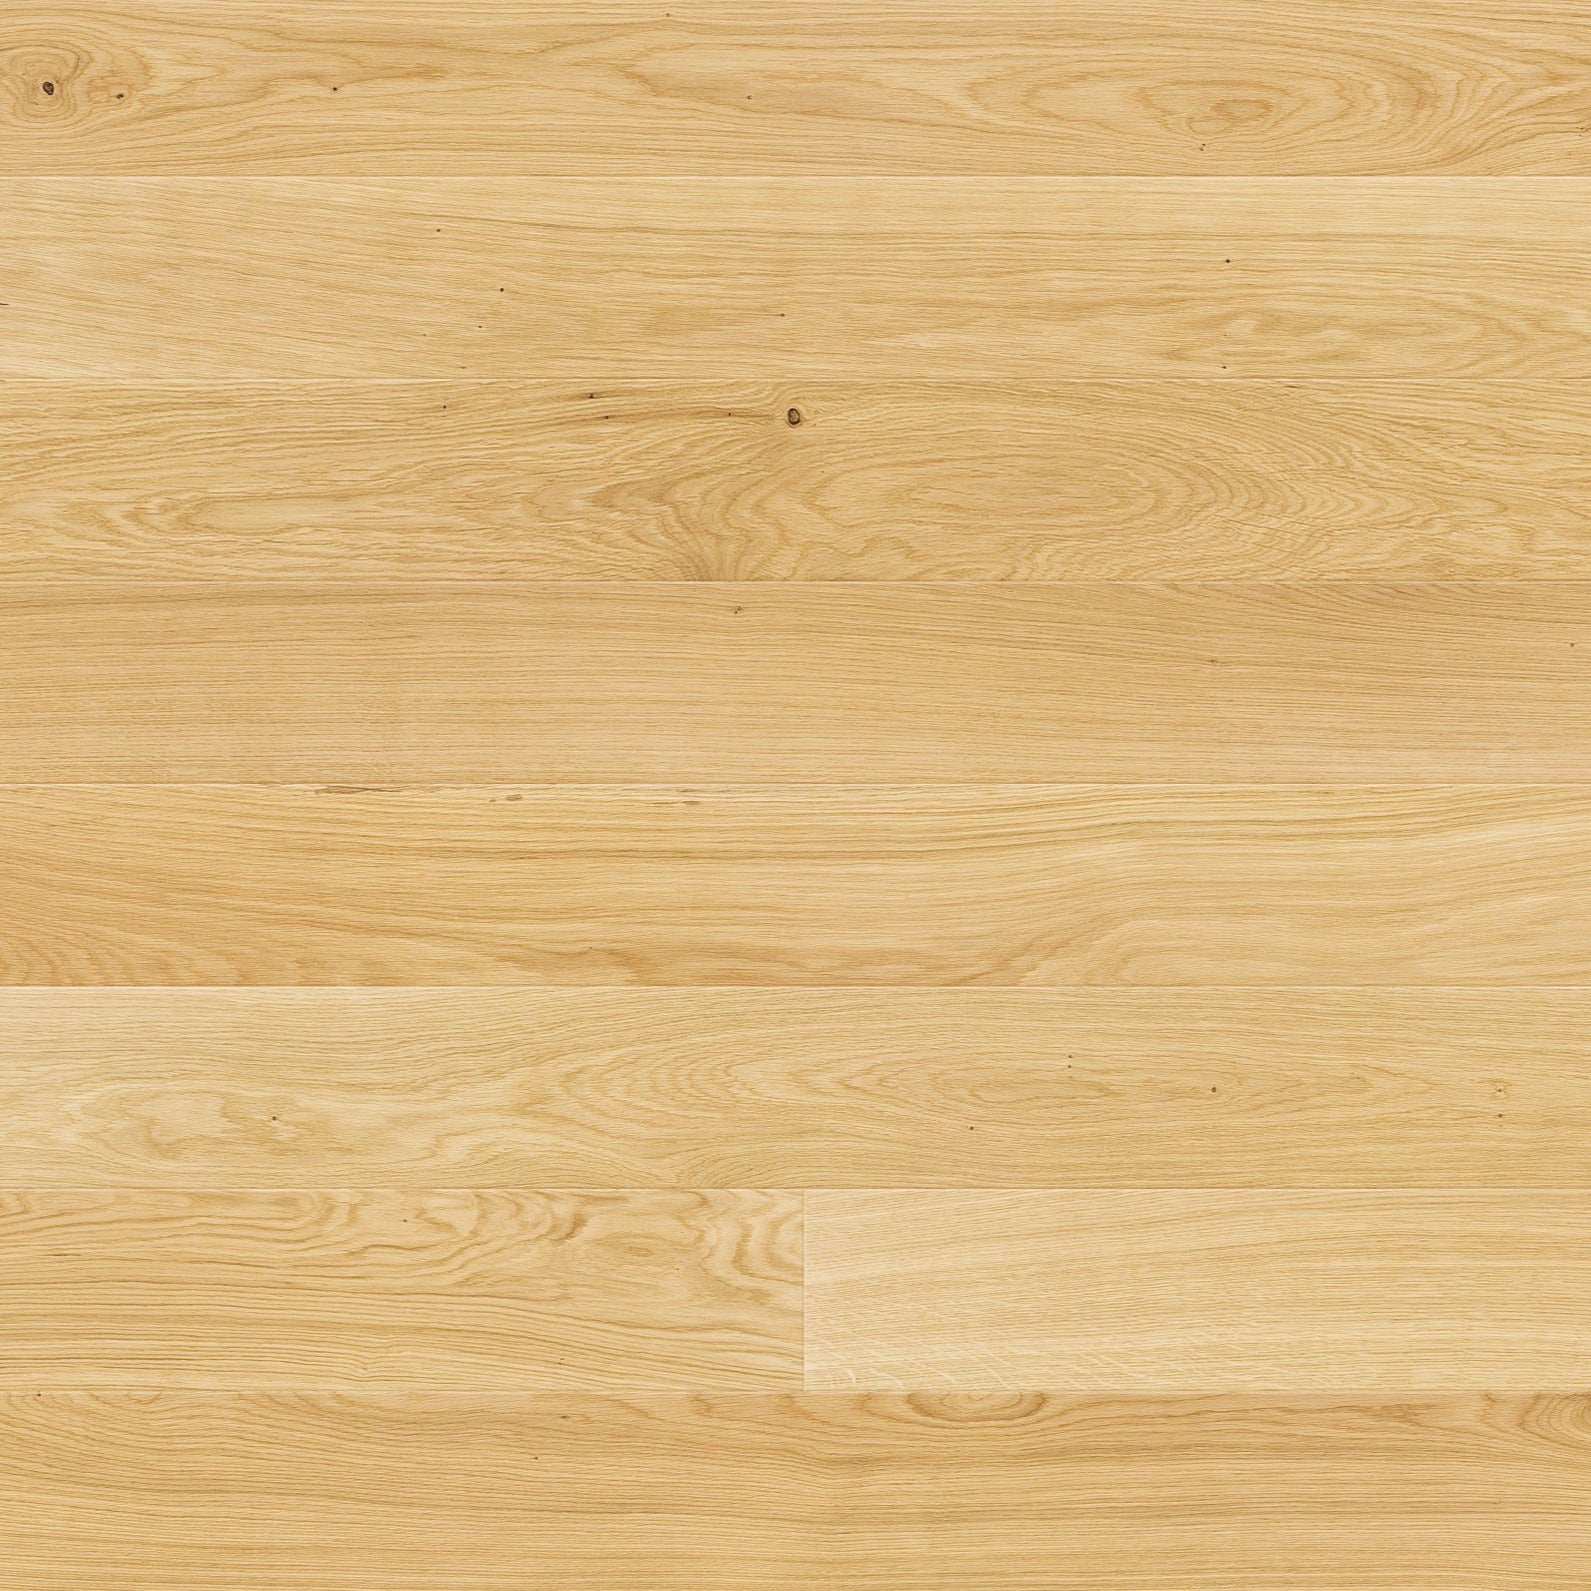 Engineered wood flooring in natural colour (5351829995677)